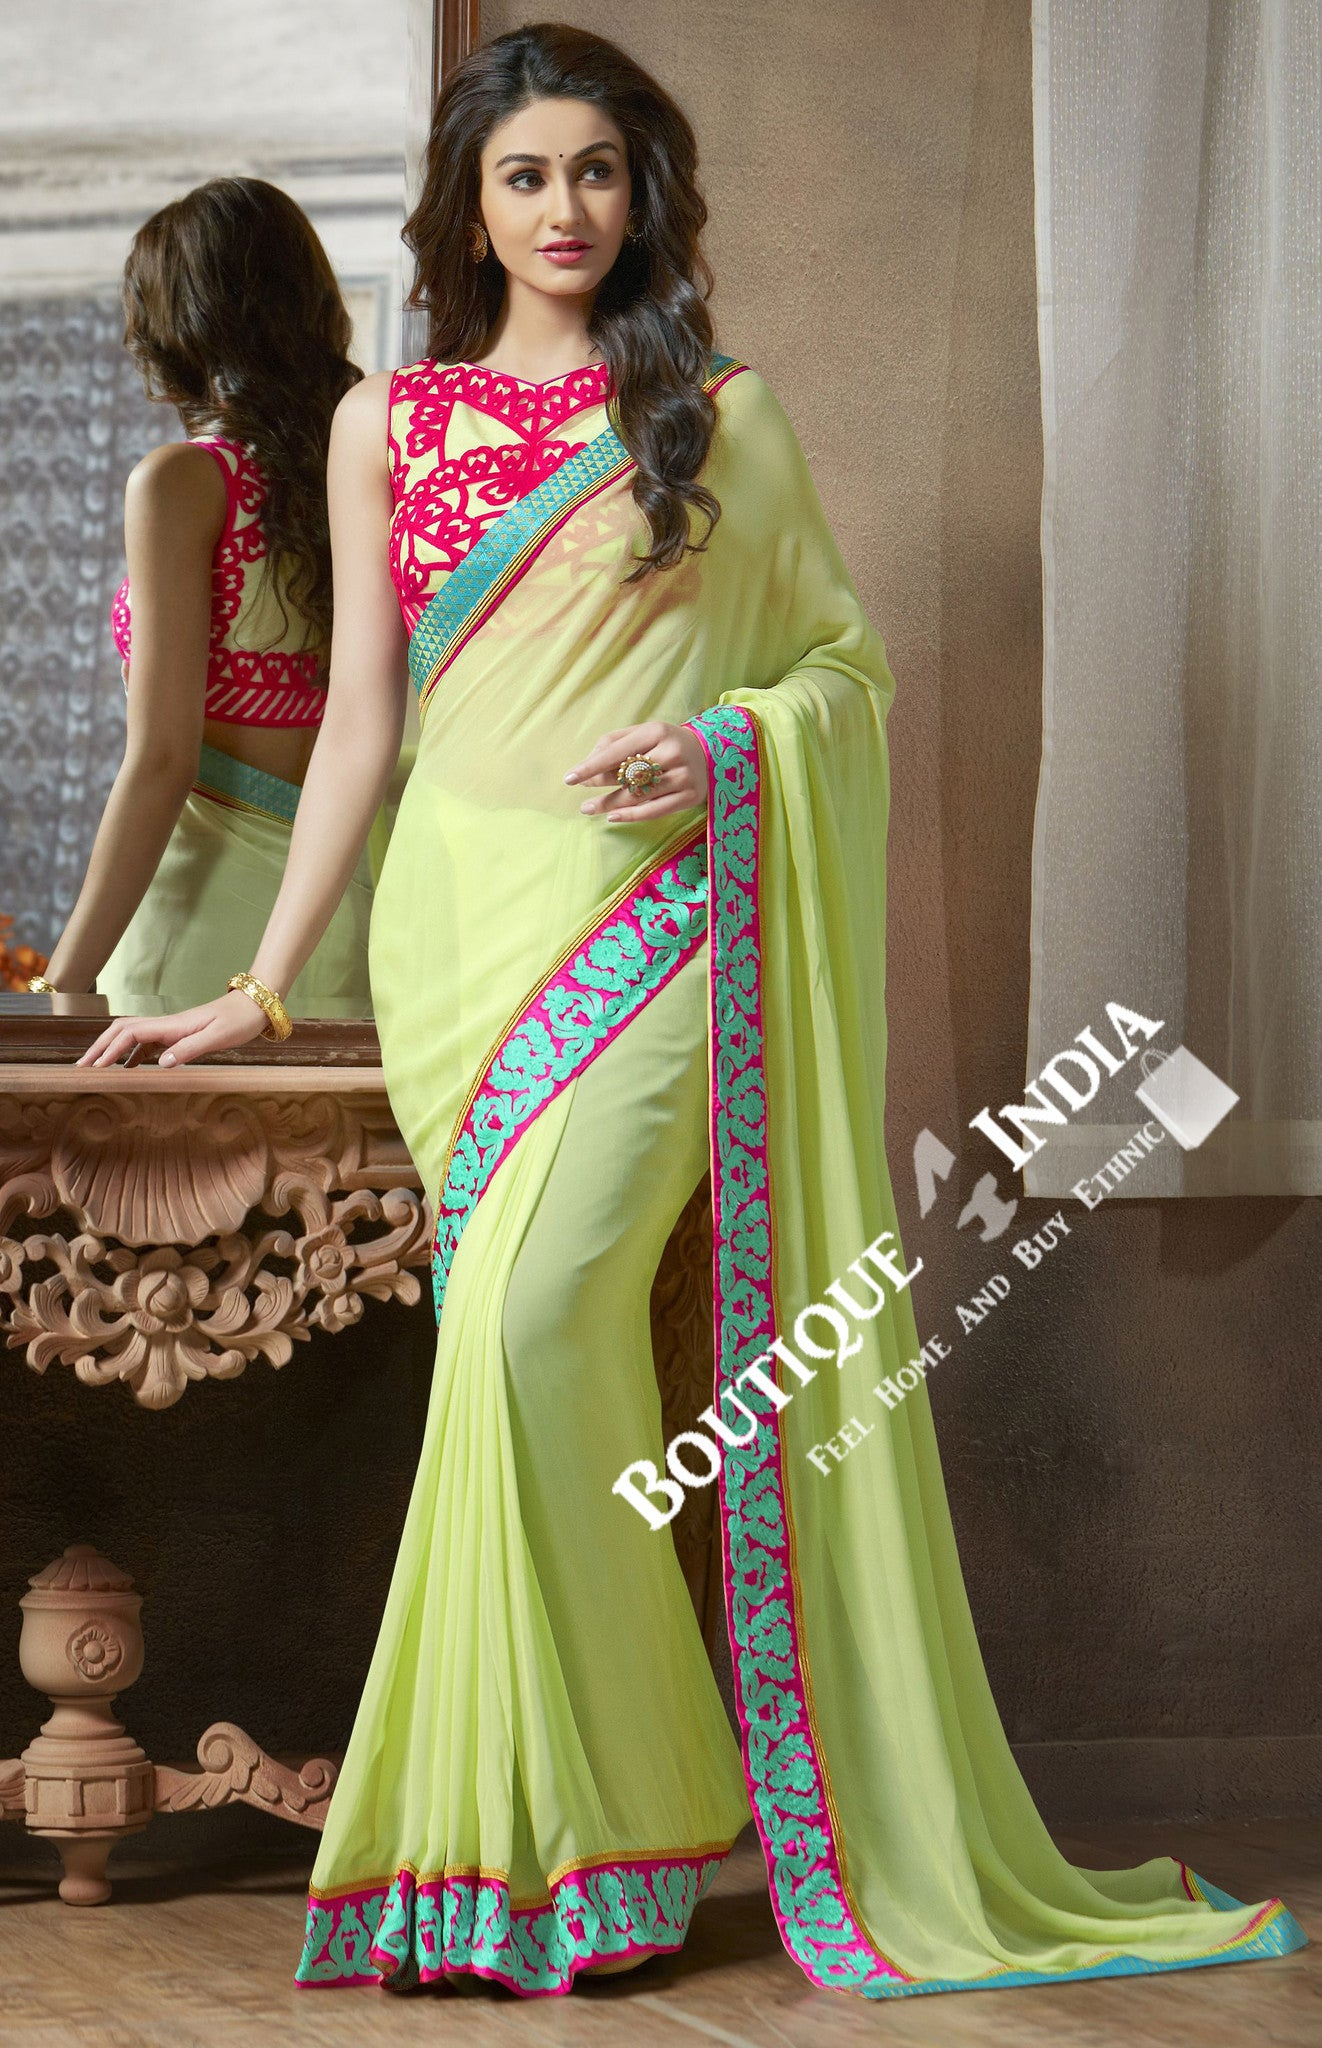 Net and Chiffon Silk Saree in Pista Green and Pink - Boutique4India Inc.